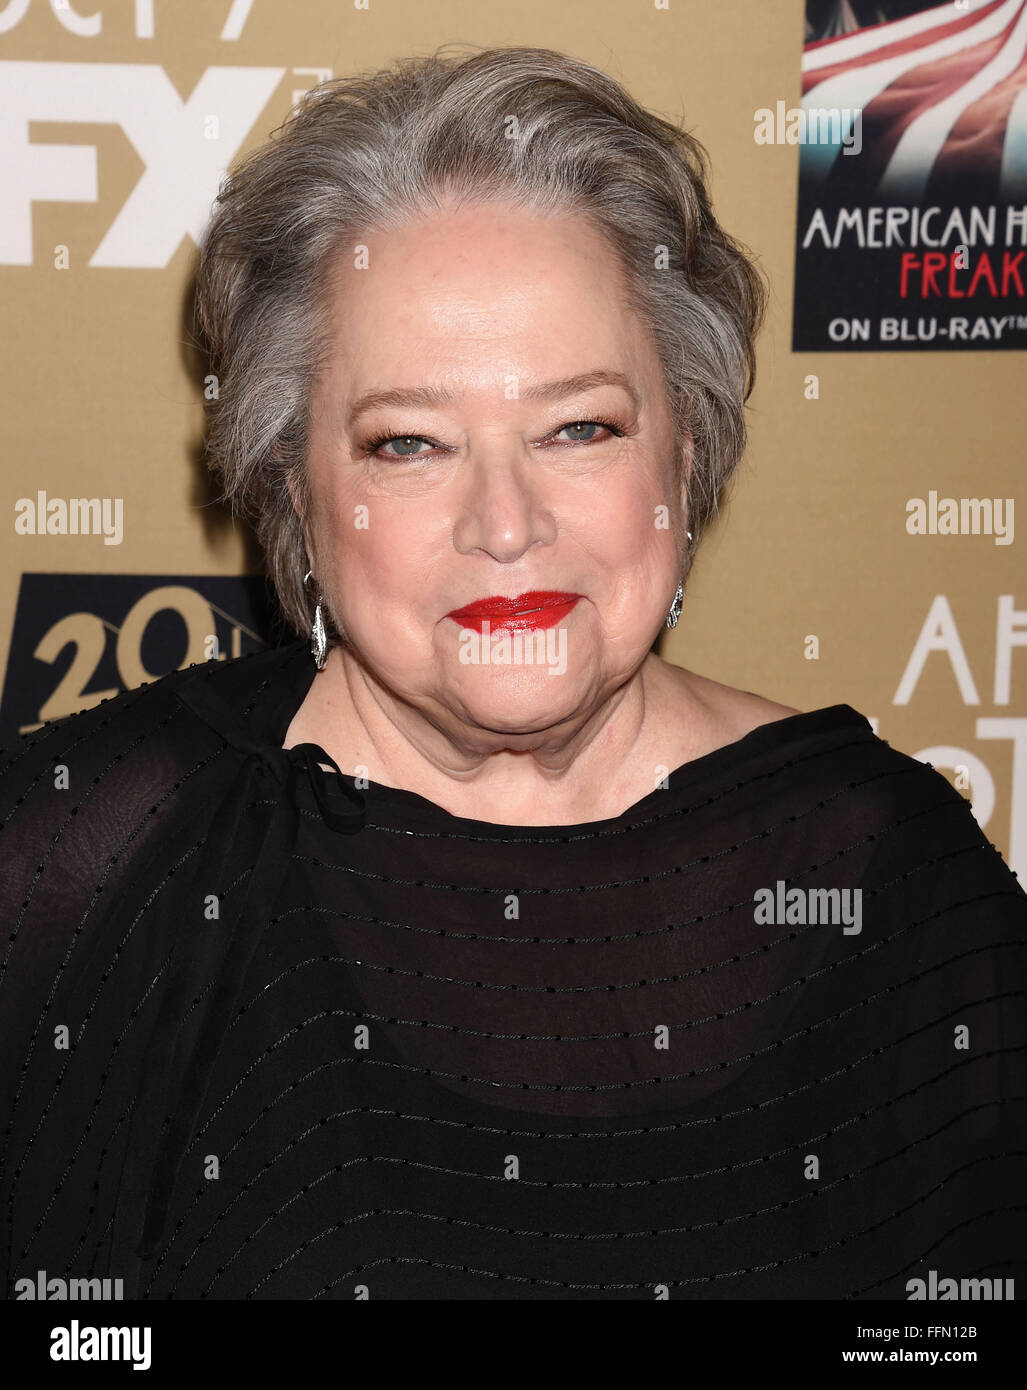 Actress Kathy Bates arrives at the premiere screening of FX's 'American Horror Story: Hotel' at Regal - Stock Image